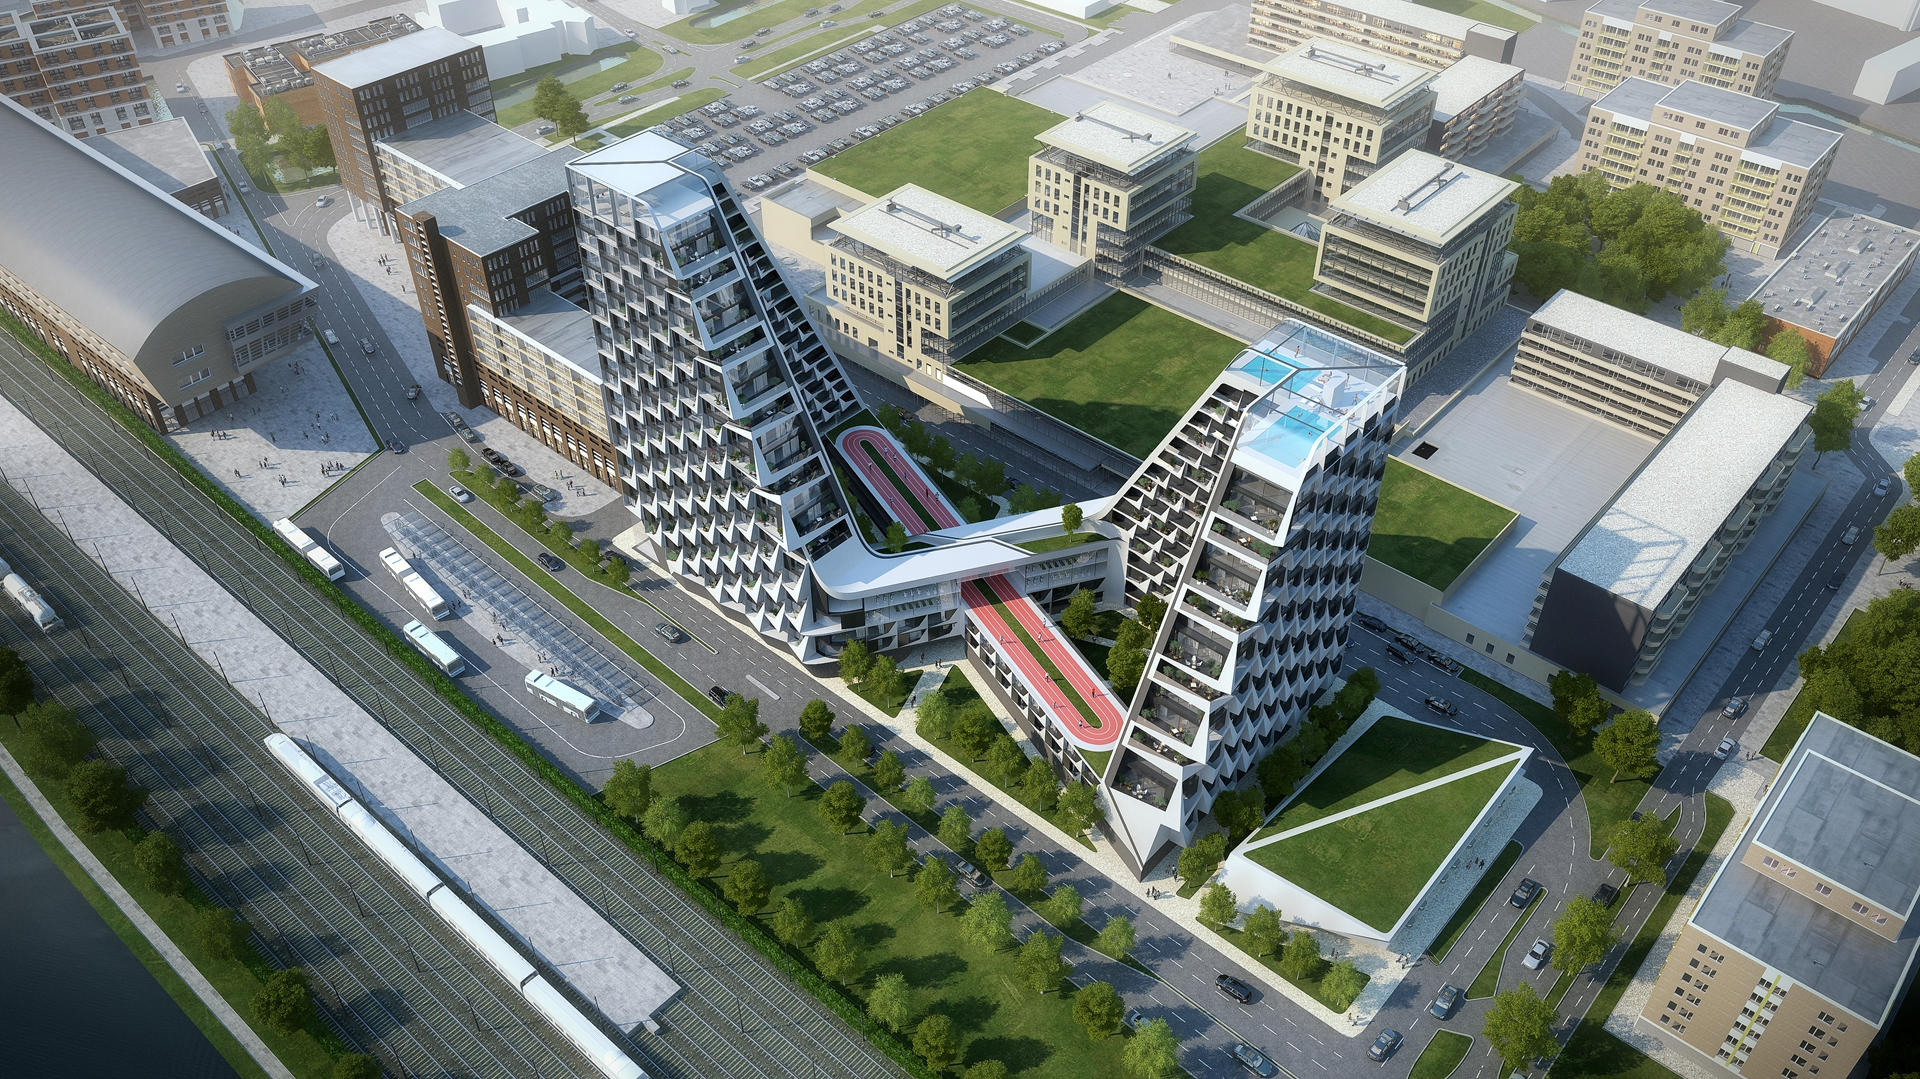 03_Peter_Pichler_Architecture_looping_towers_Netherlands_BIRD_VIEW (Copy)